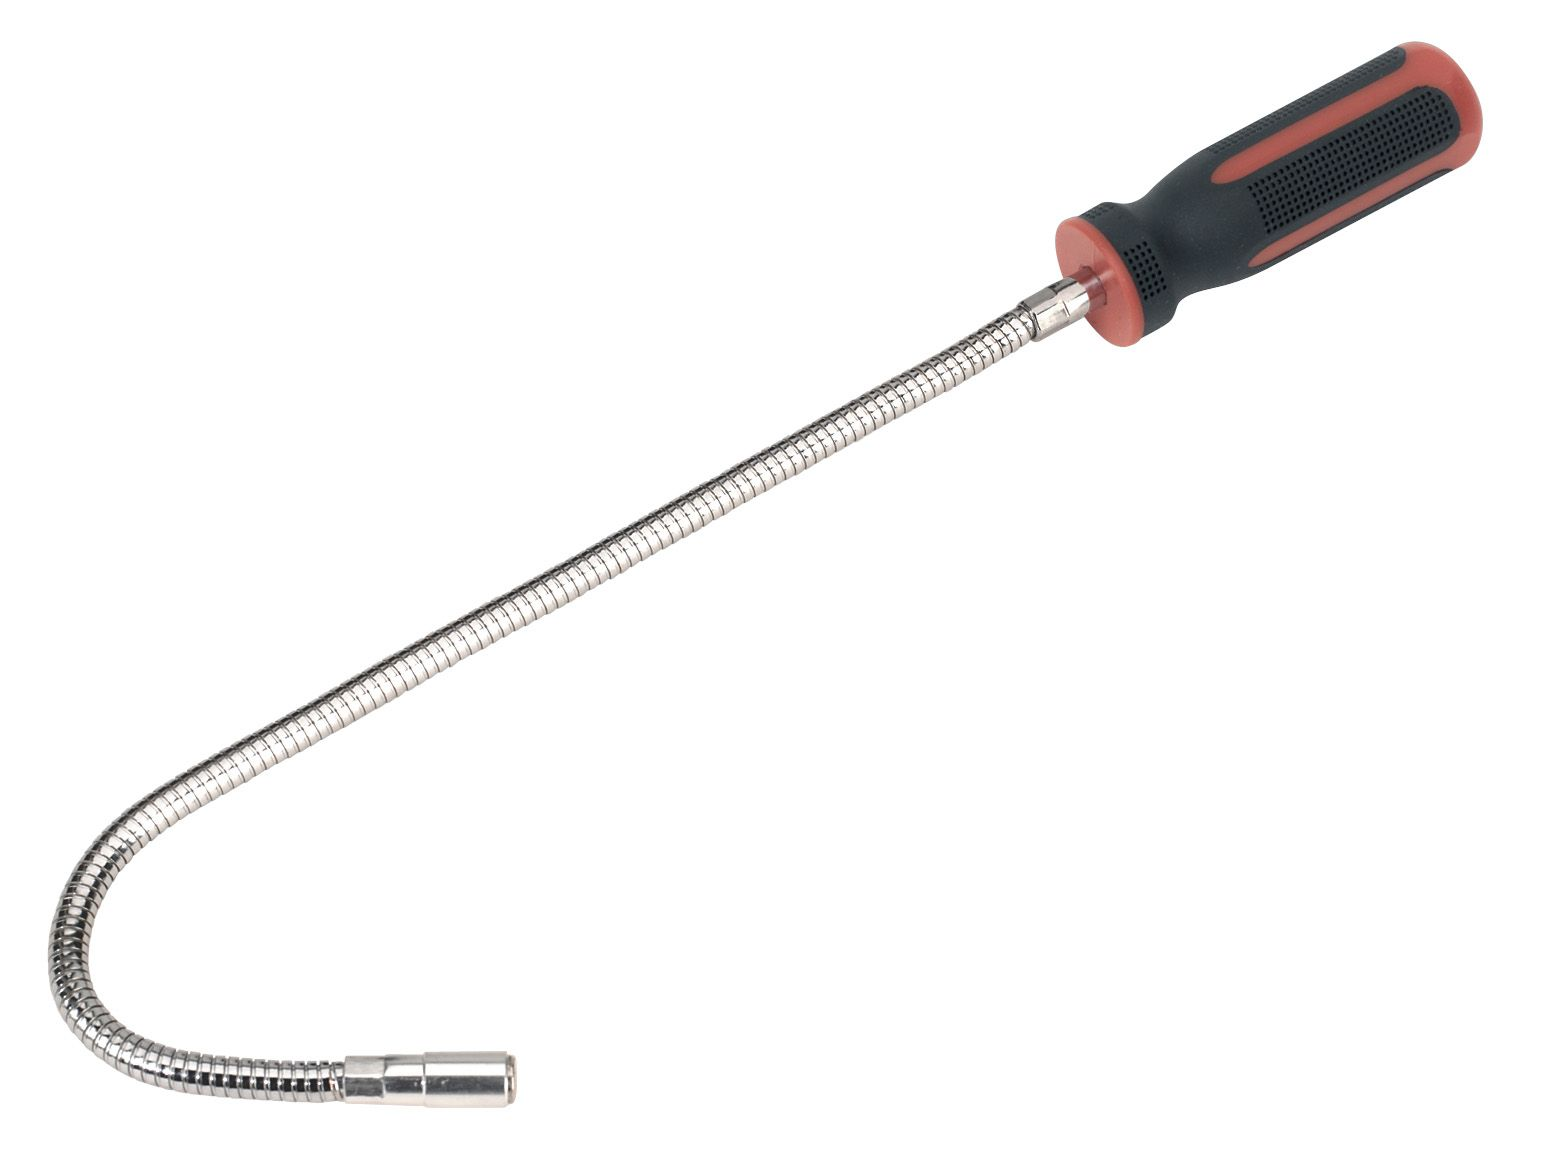 Sealey Flexible Magnetic Pick-Up Tool 1kg Capacity